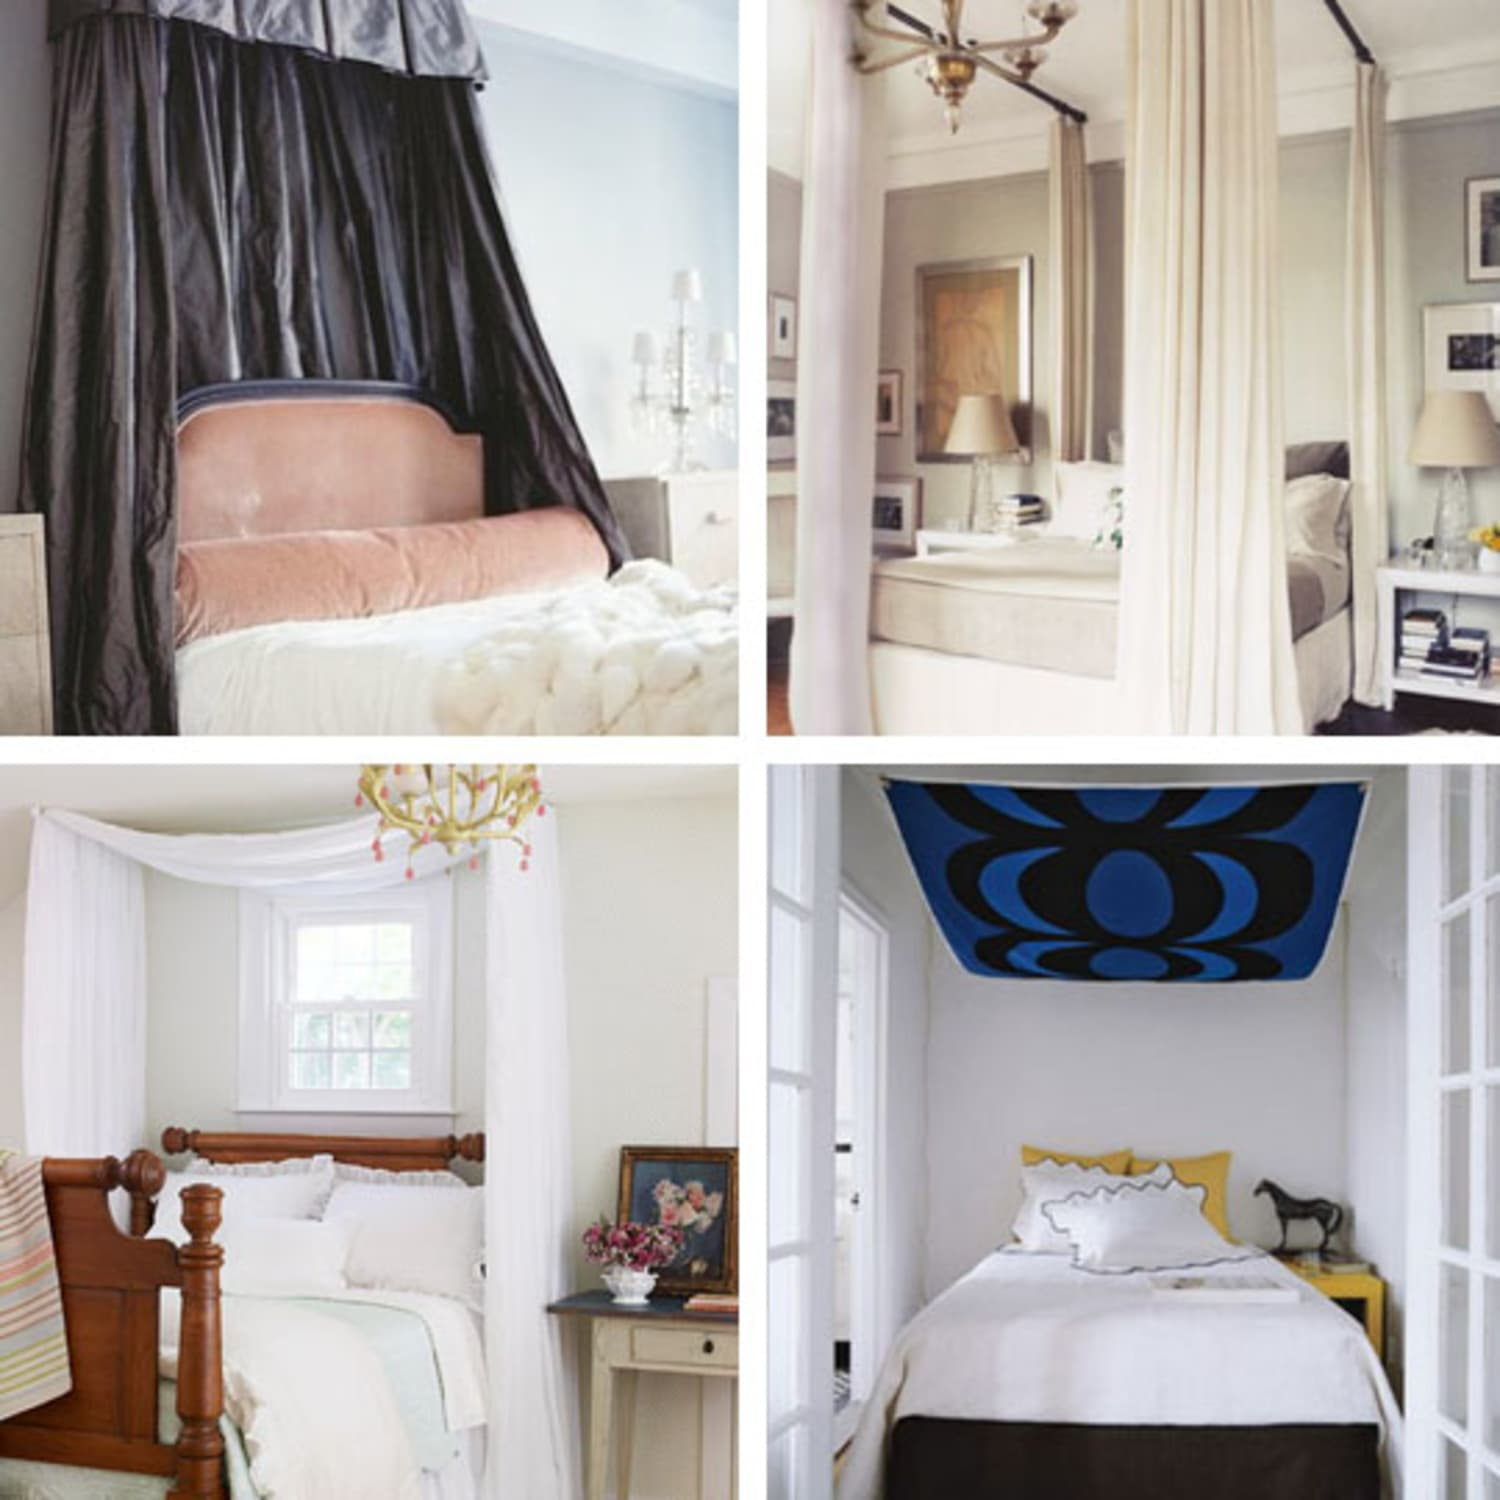 DIY Ideas for Getting the Look of a Canopy Bed Without ...